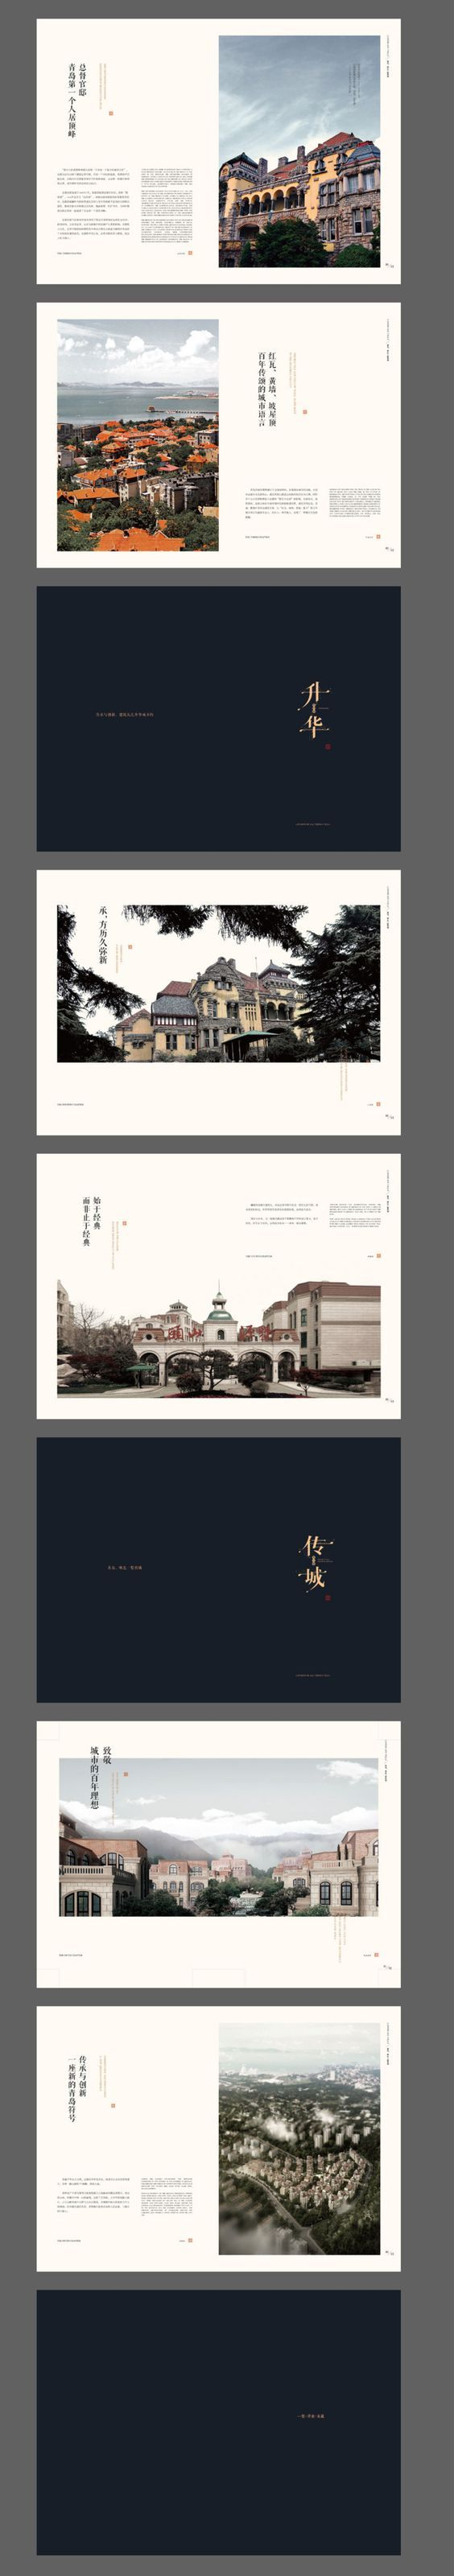 我给采集到Layout design(363图)_花瓣: